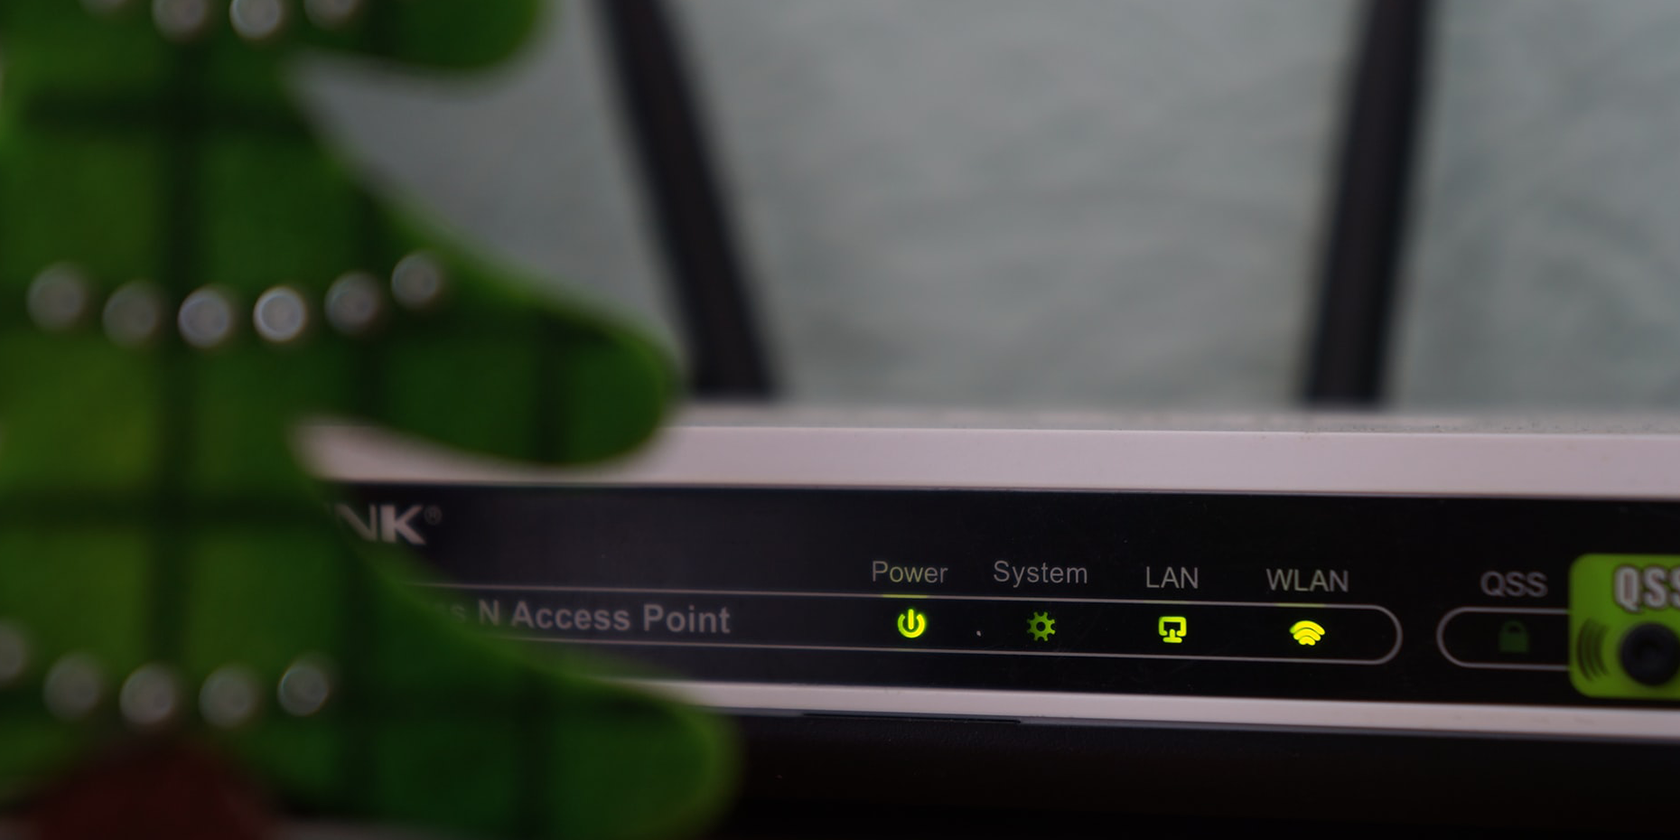 8 Fixes to Improve Wi-Fi Performance on Your iPhone